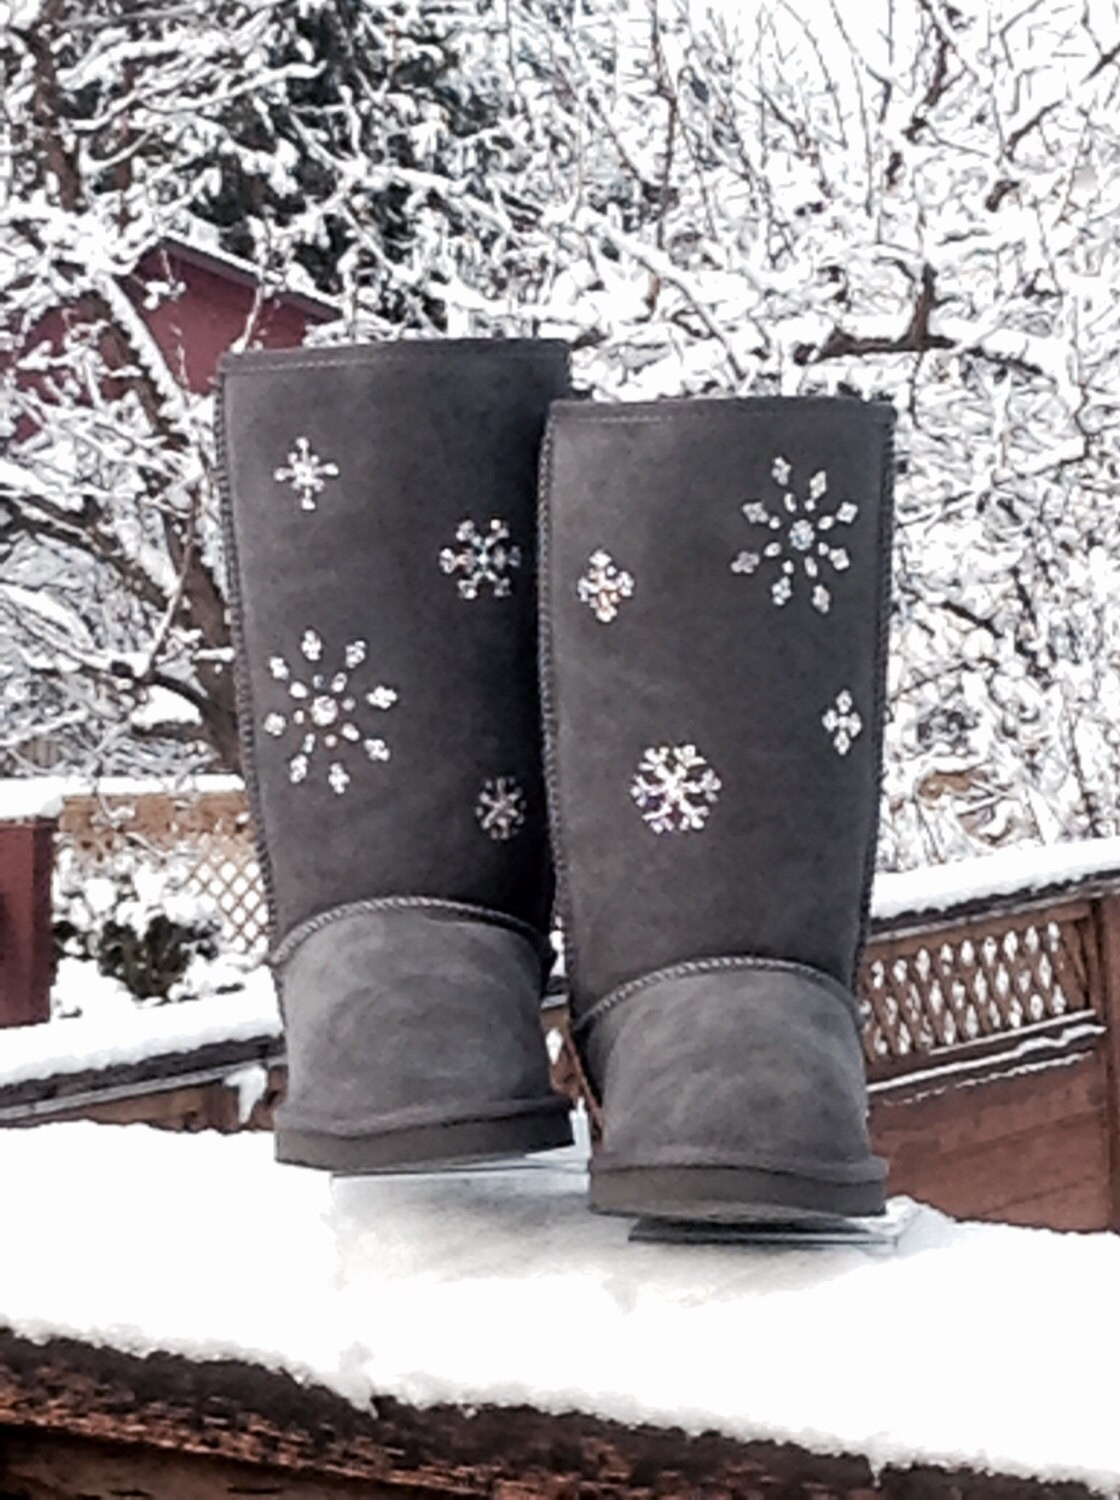 deee81a0ce32b Customized UGG Tall or Short boots Winter Snow Flakes w/ Swarovski Crystal Classic  Ladies Rhinestone Fashion Cold Weather Sheepswool Boots